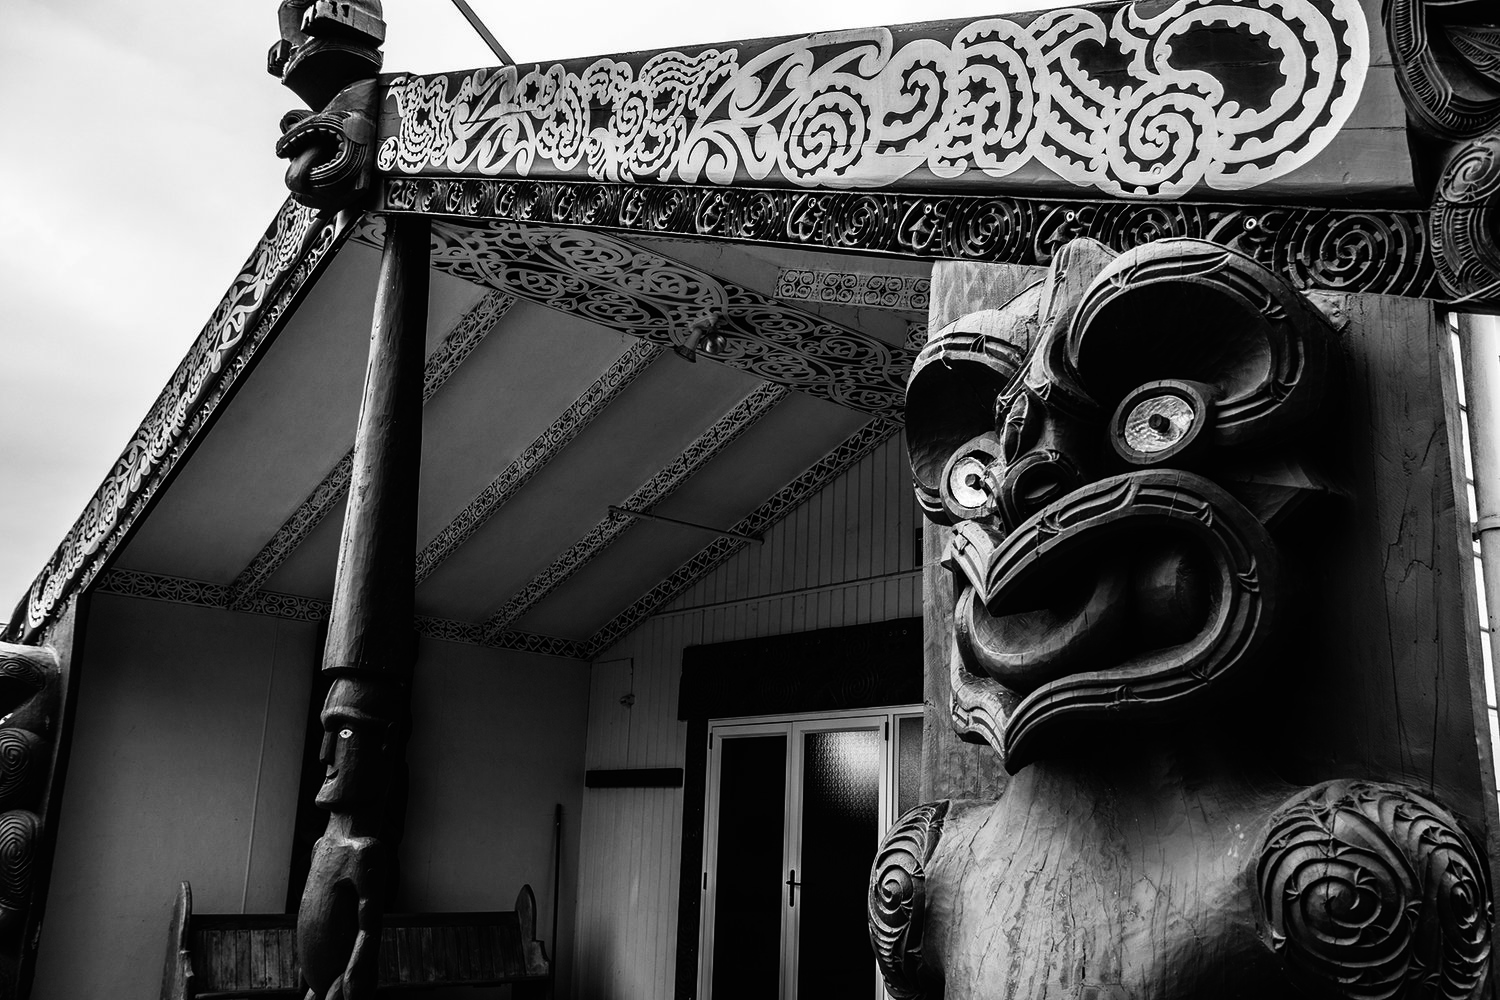 I was humbled, rendered almost speechless by a traditional welcome into this Marae